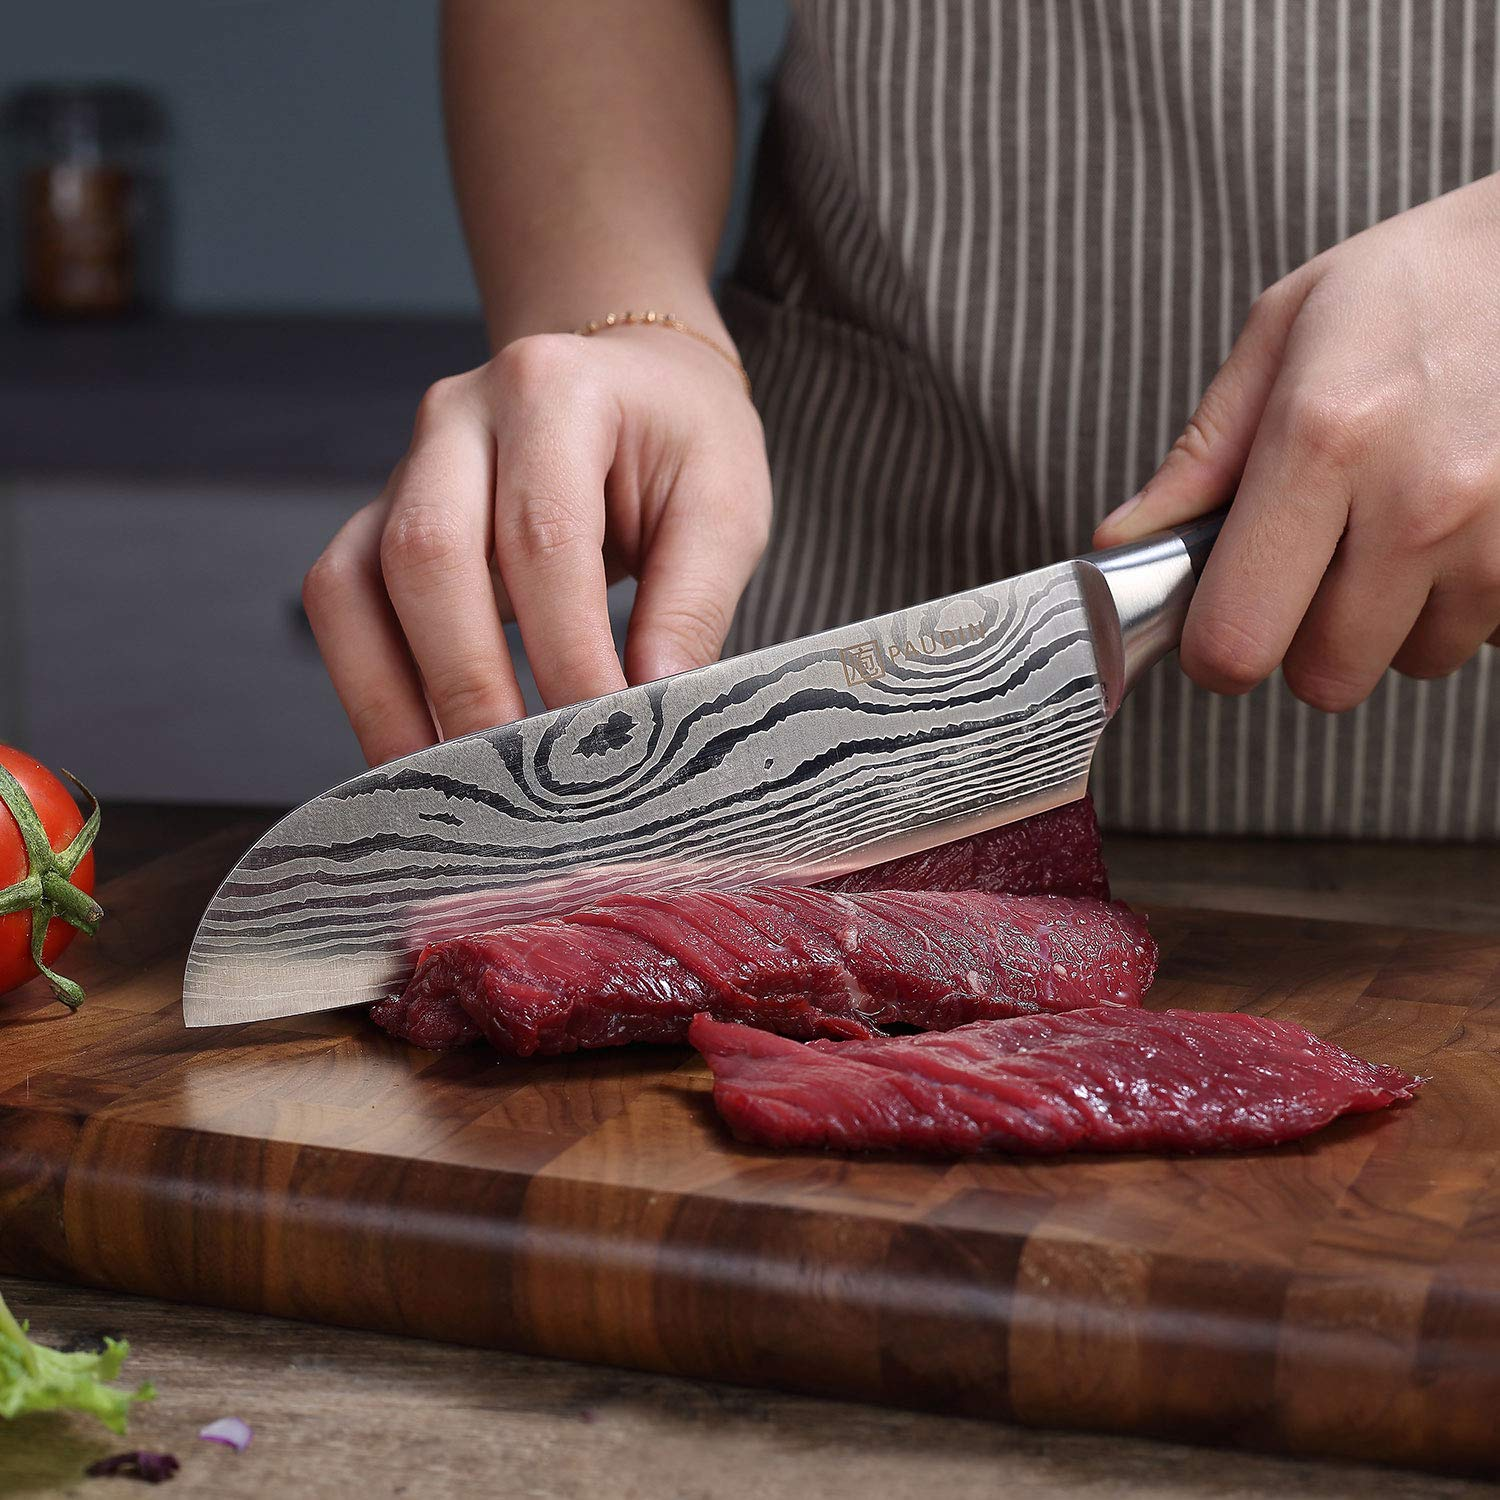 Santoku Knife - PAUDIN Classic 7 inch Hollow Ground Sharp Knife, German High Carbon Stainless Steel Kitchen Knife by PAUDIN (Image #3)